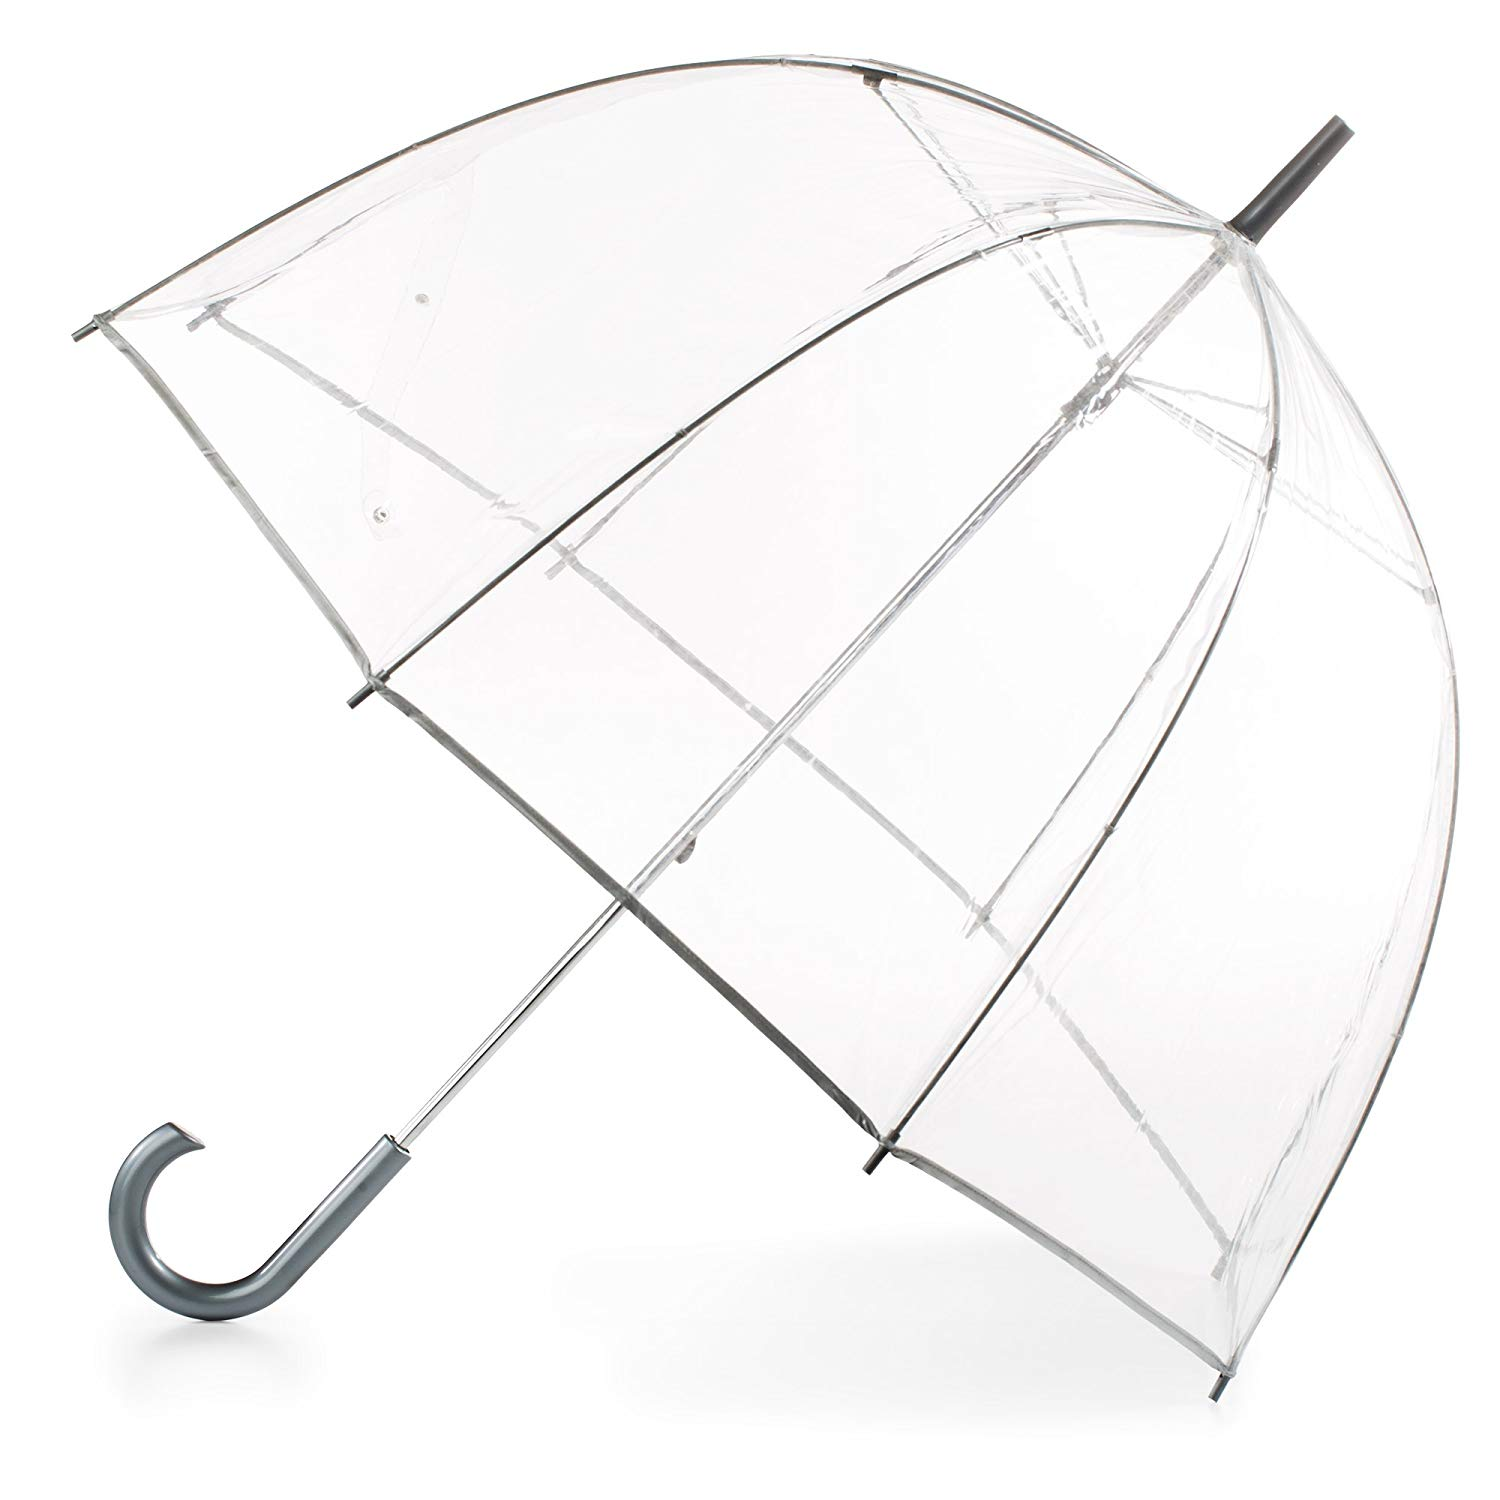 10 Of The Best Wedding Umbrellas For Rain